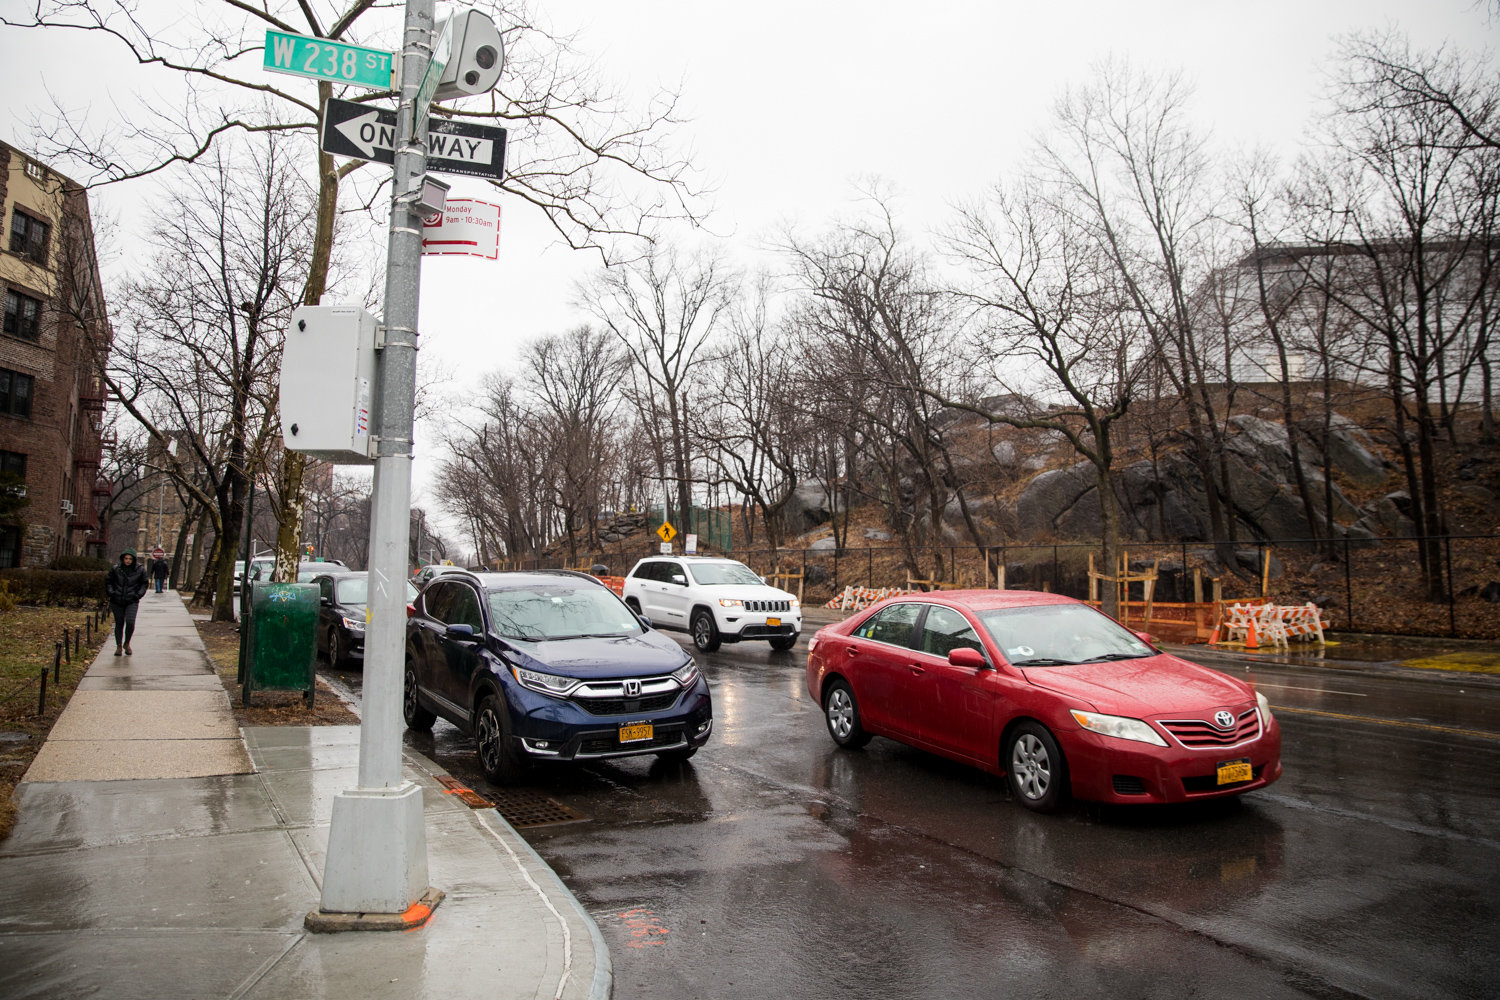 Drivers will have to exercise extra caution when making their way along Riverdale Avenue near West 238th Street because of a new speed camera mounted there.